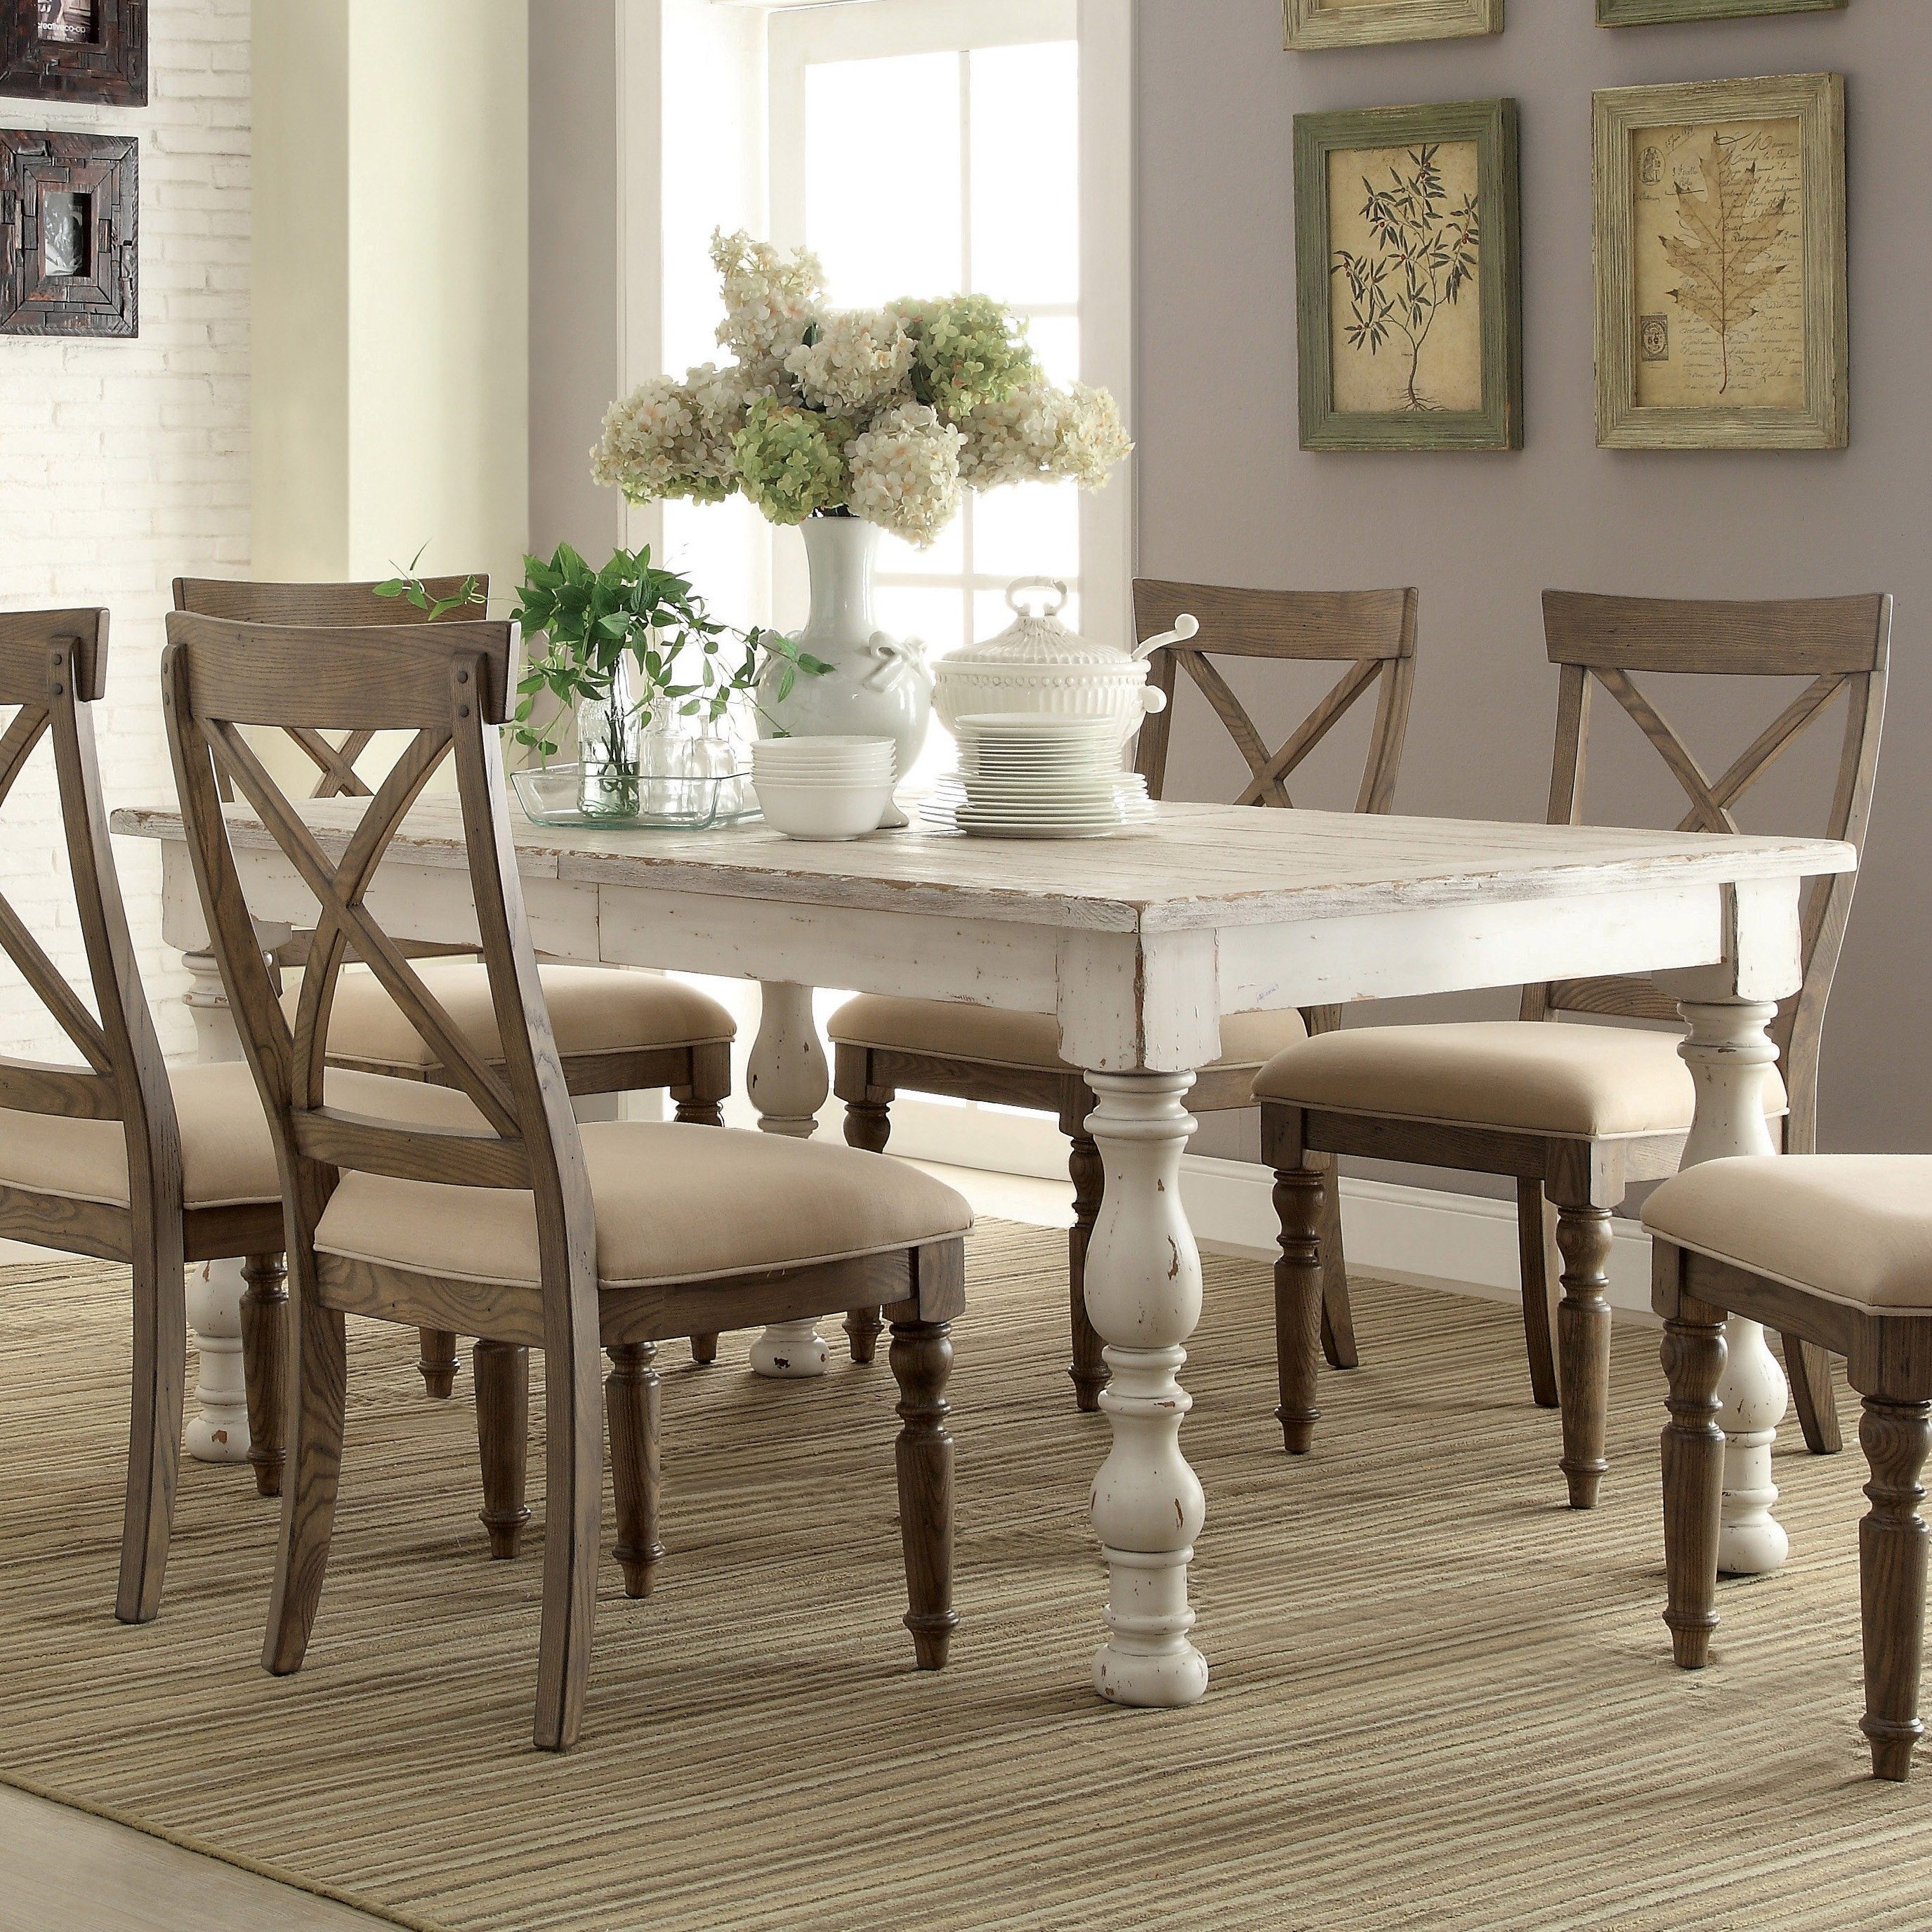 Aberdeen wood rectangular dining table and chairs in for Dining room table and bench set